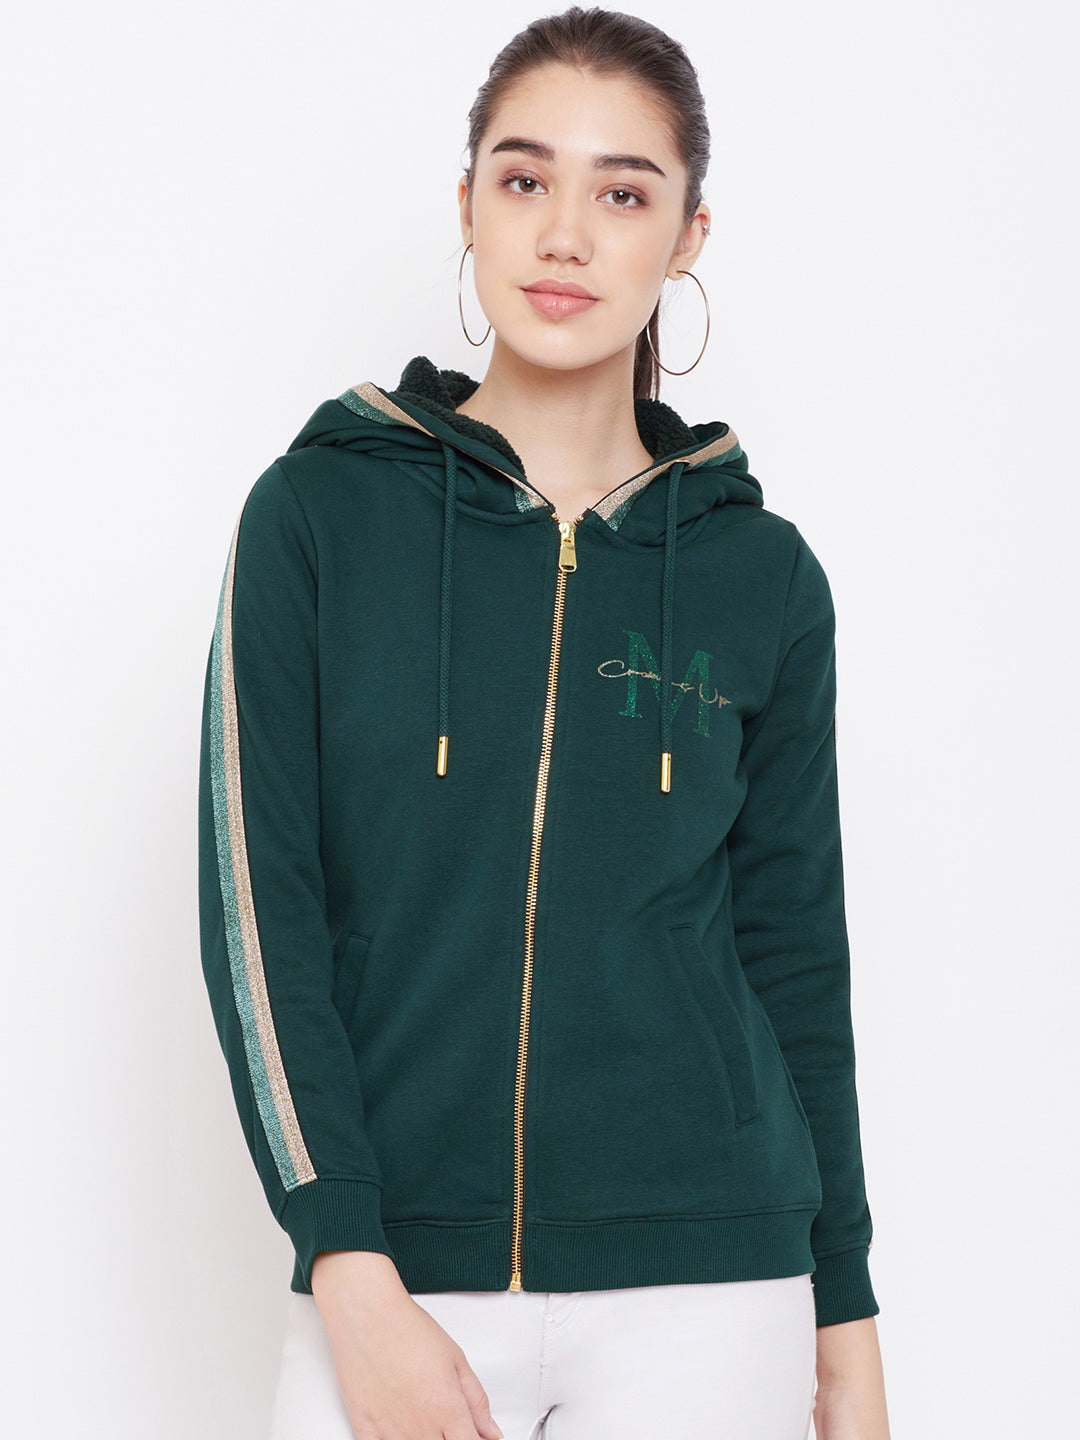 Mountain Green sweat shirt from Mettle Apparels